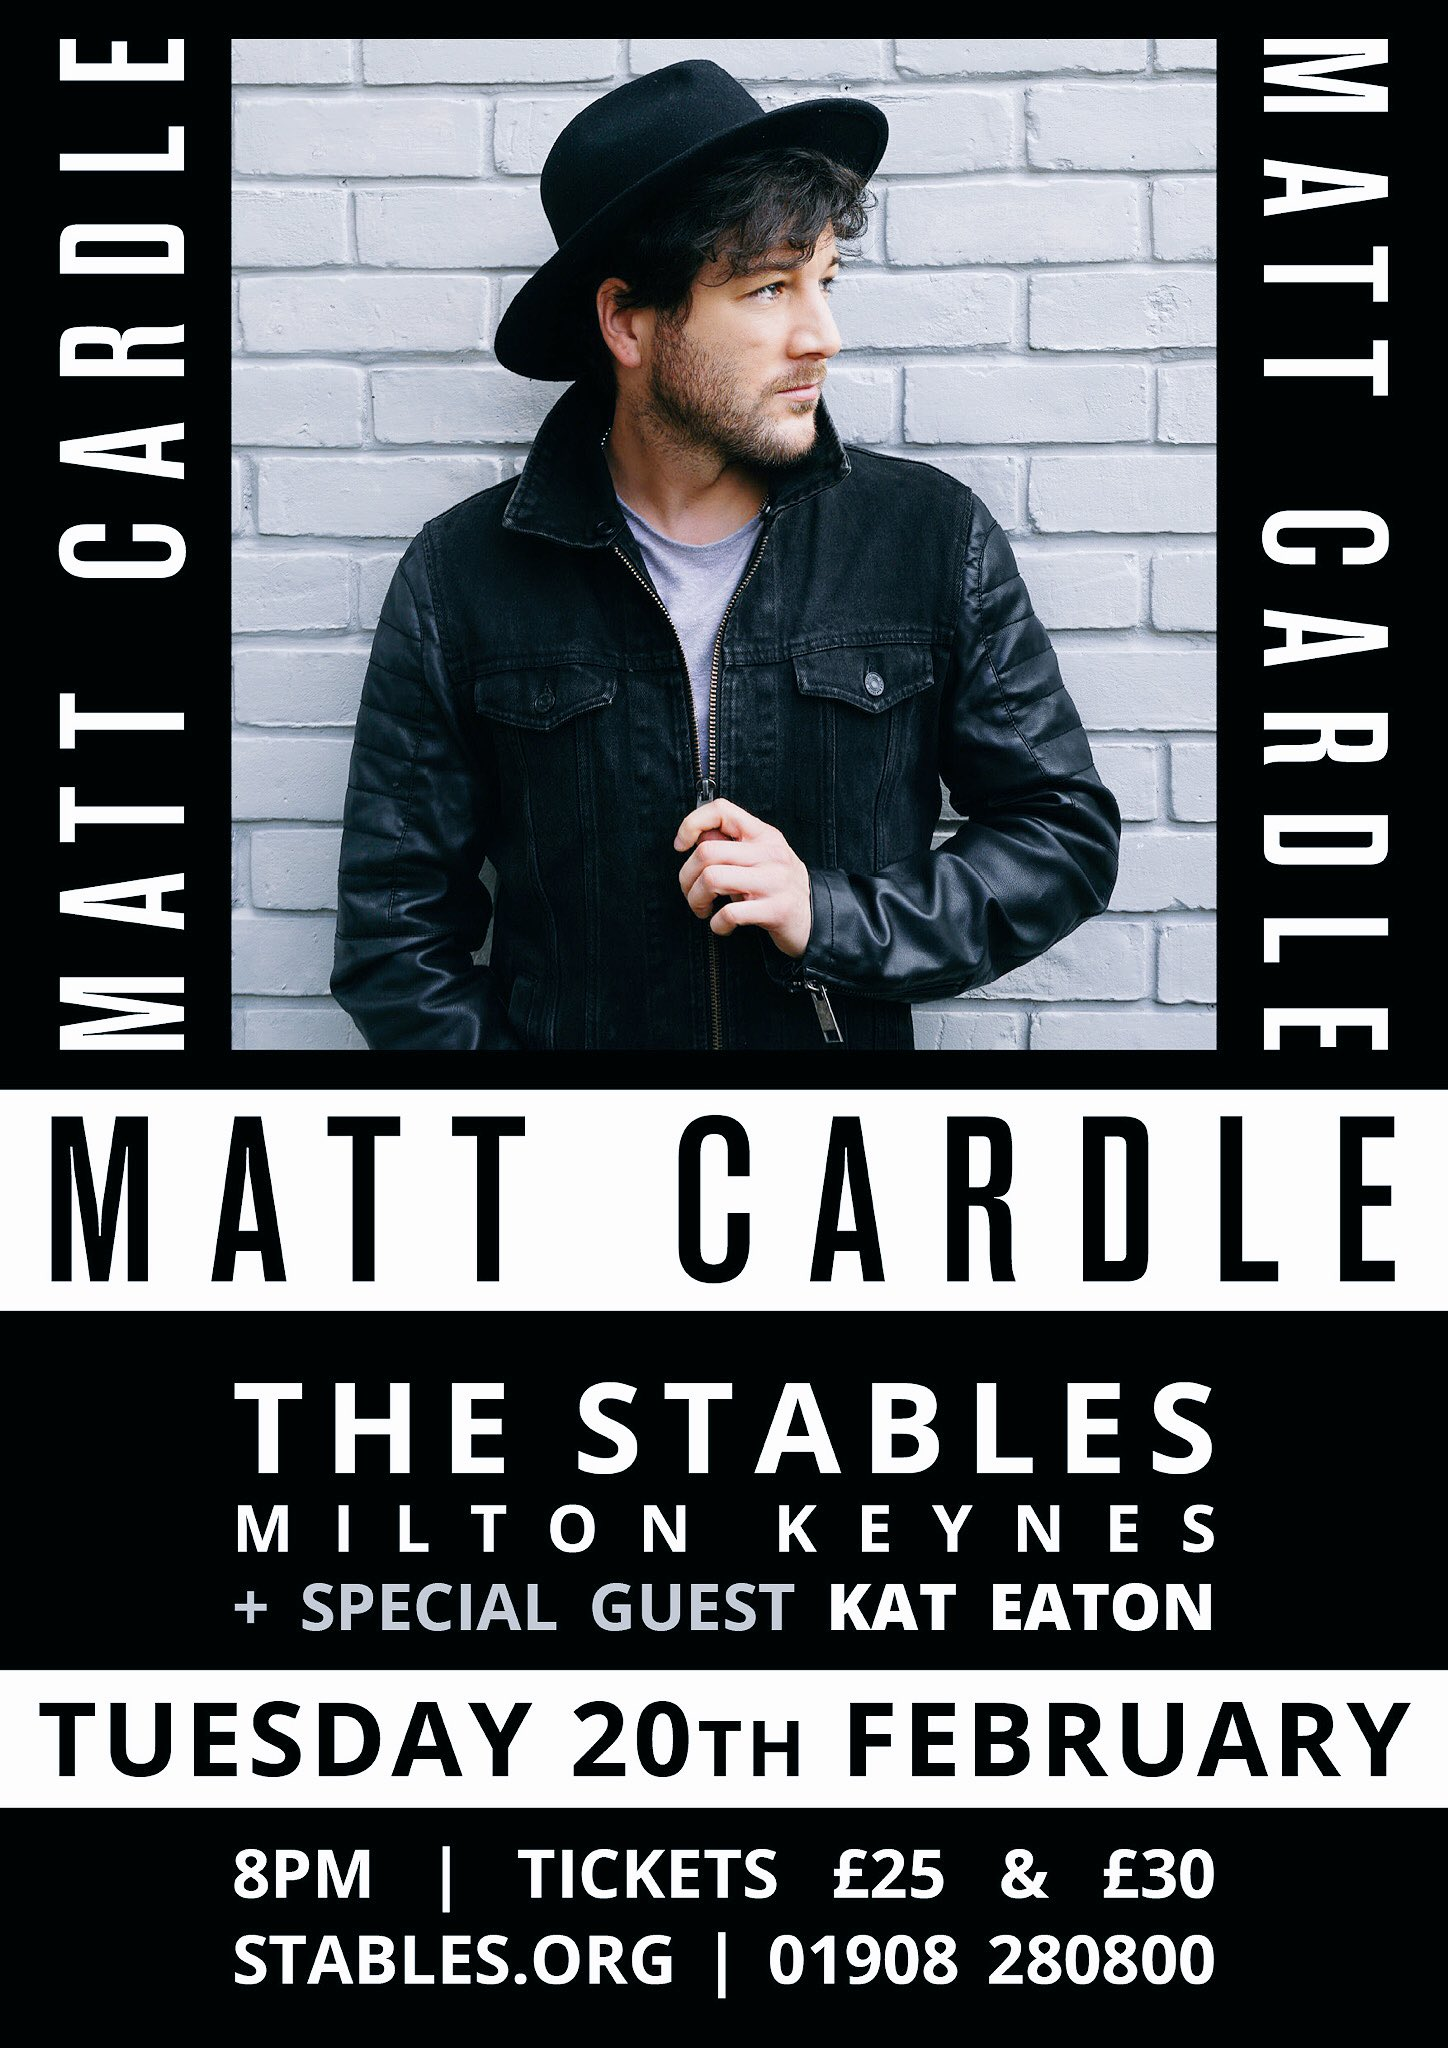 First gig of 2018 @StablesMK 🙏🏼 Can't wait!!!!! 😊 xx https://t.co/X9XA4fNVrA https://t.co/yMs0tE5um5